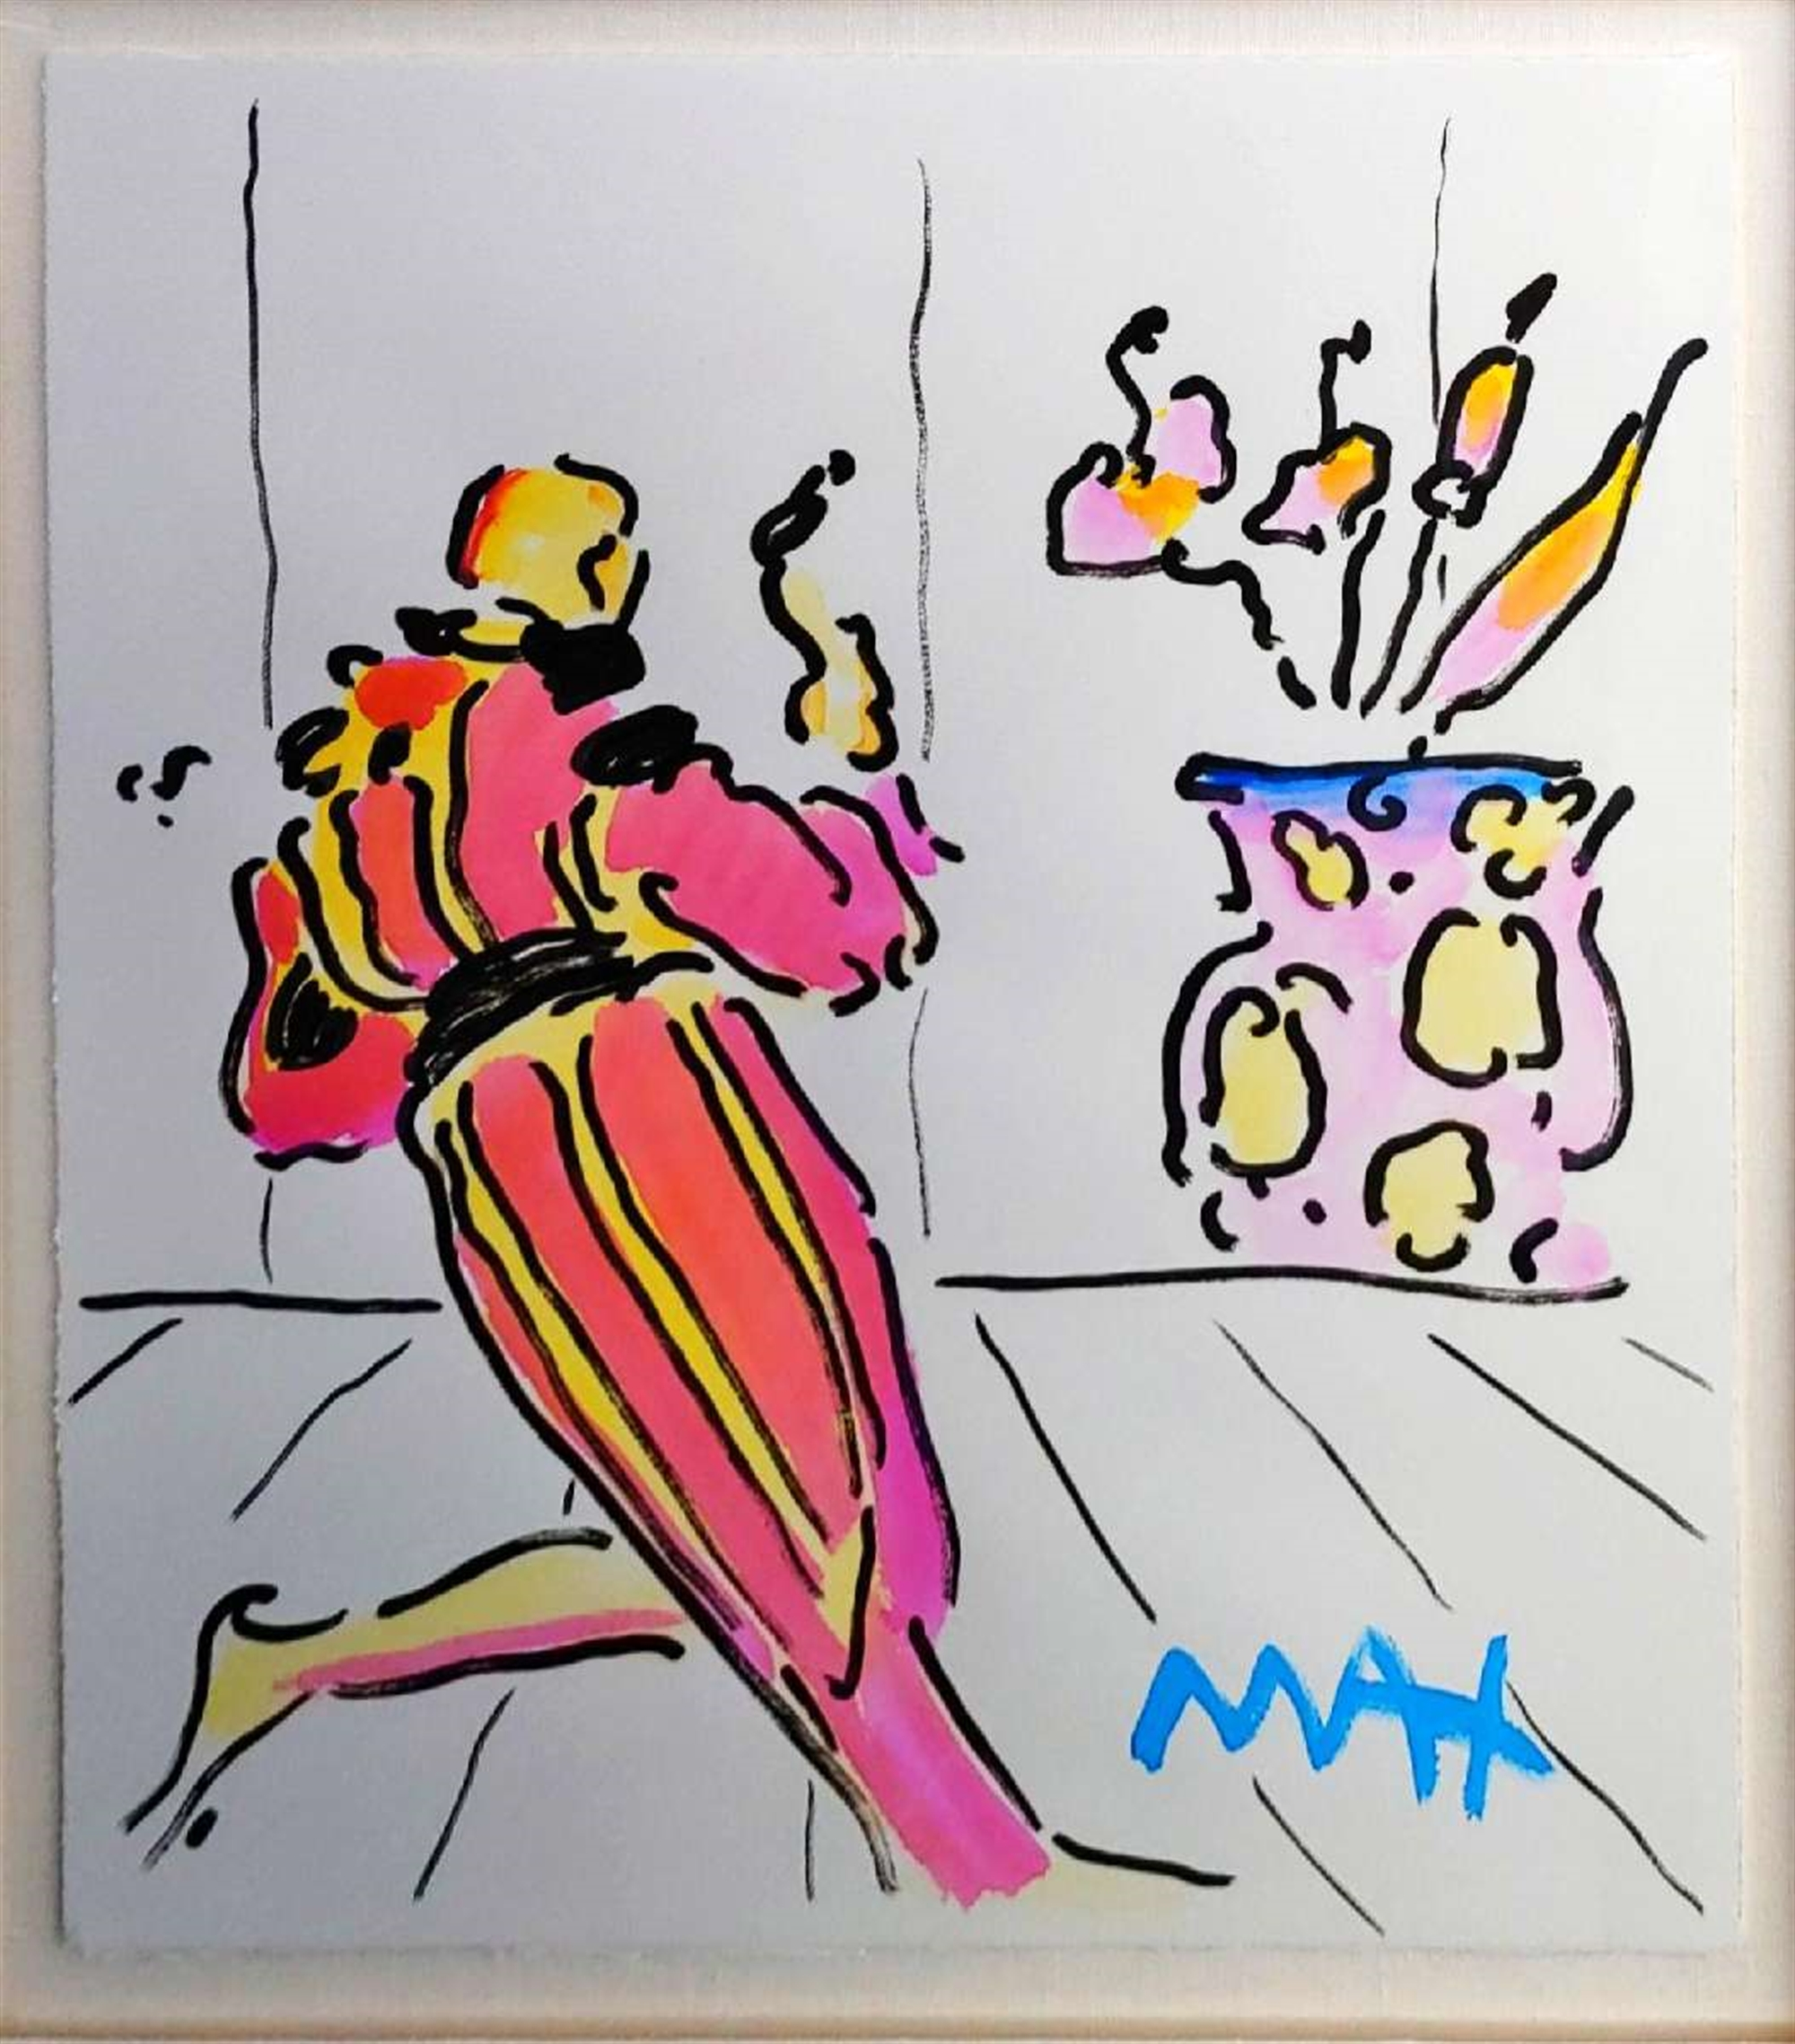 MONK WITH VASE by Peter Max